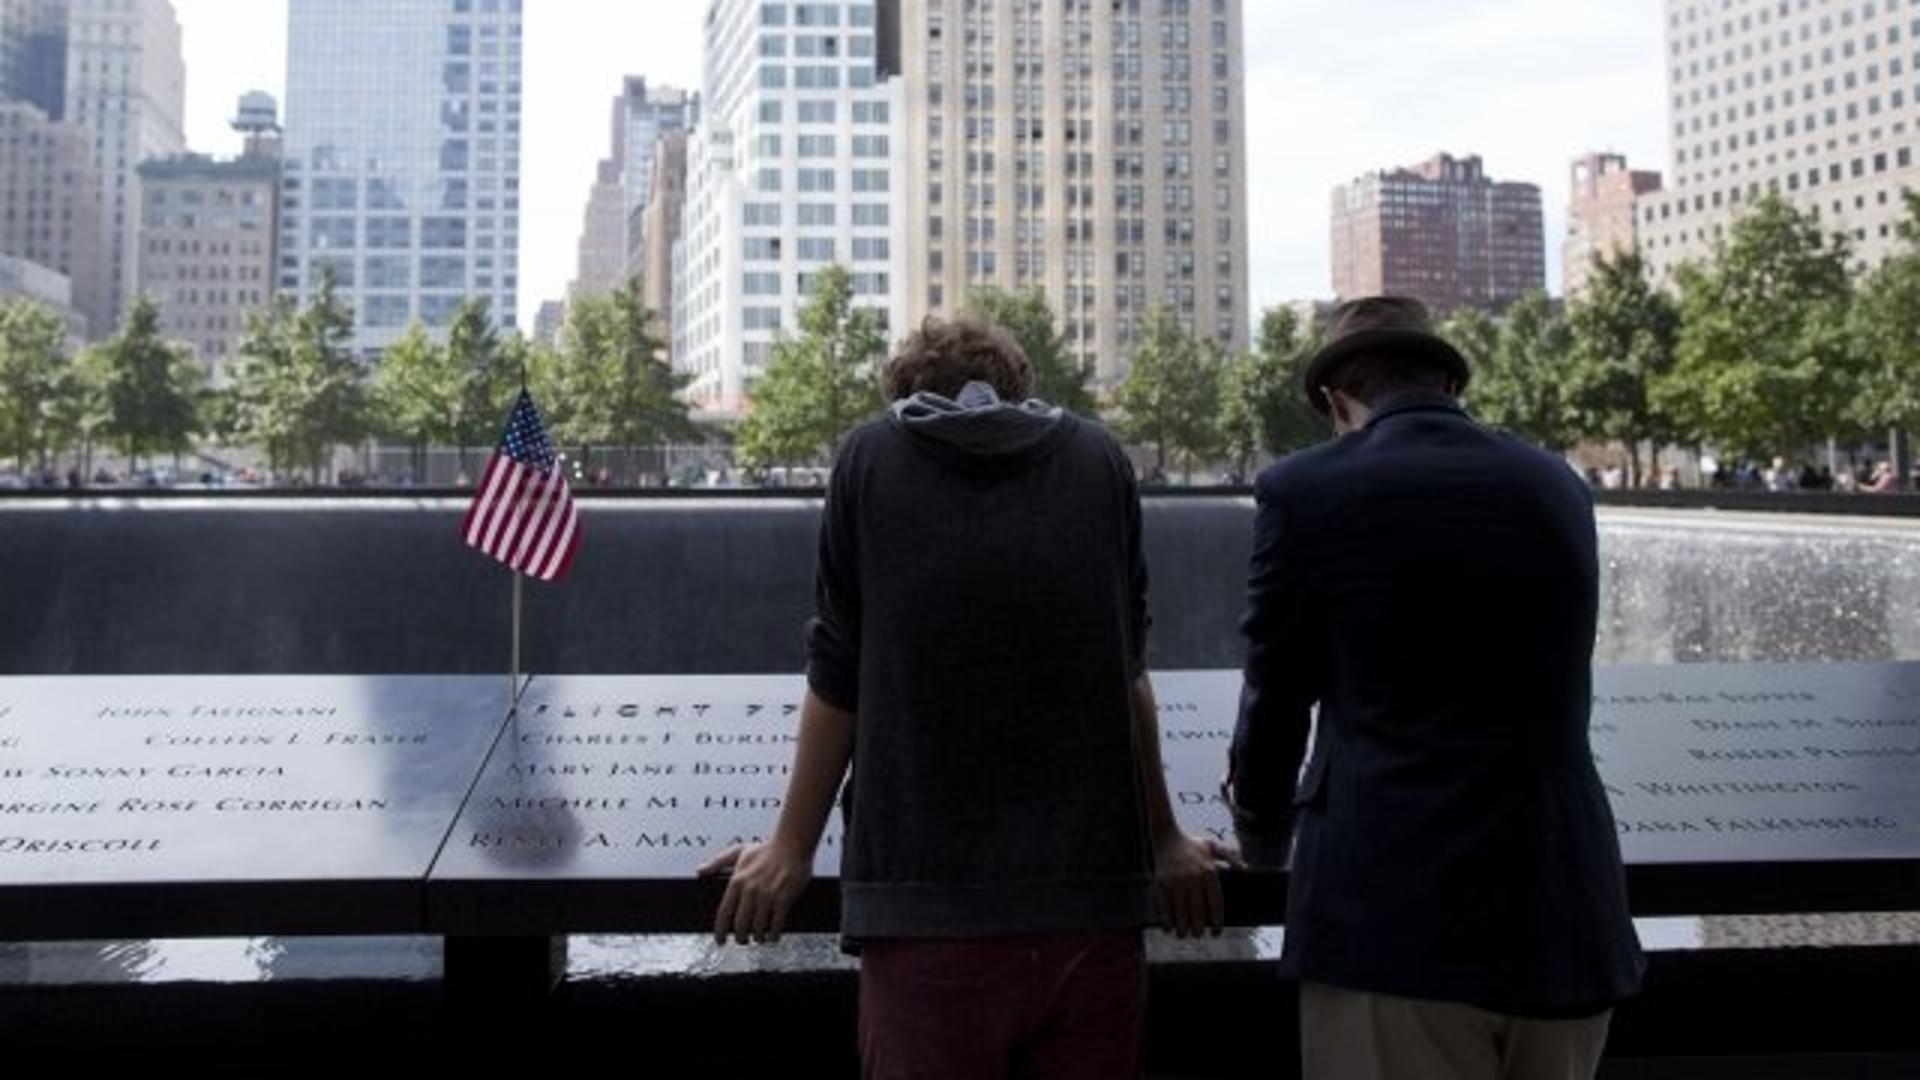 New York City Prepares For 17th Anniversary Of 9/11